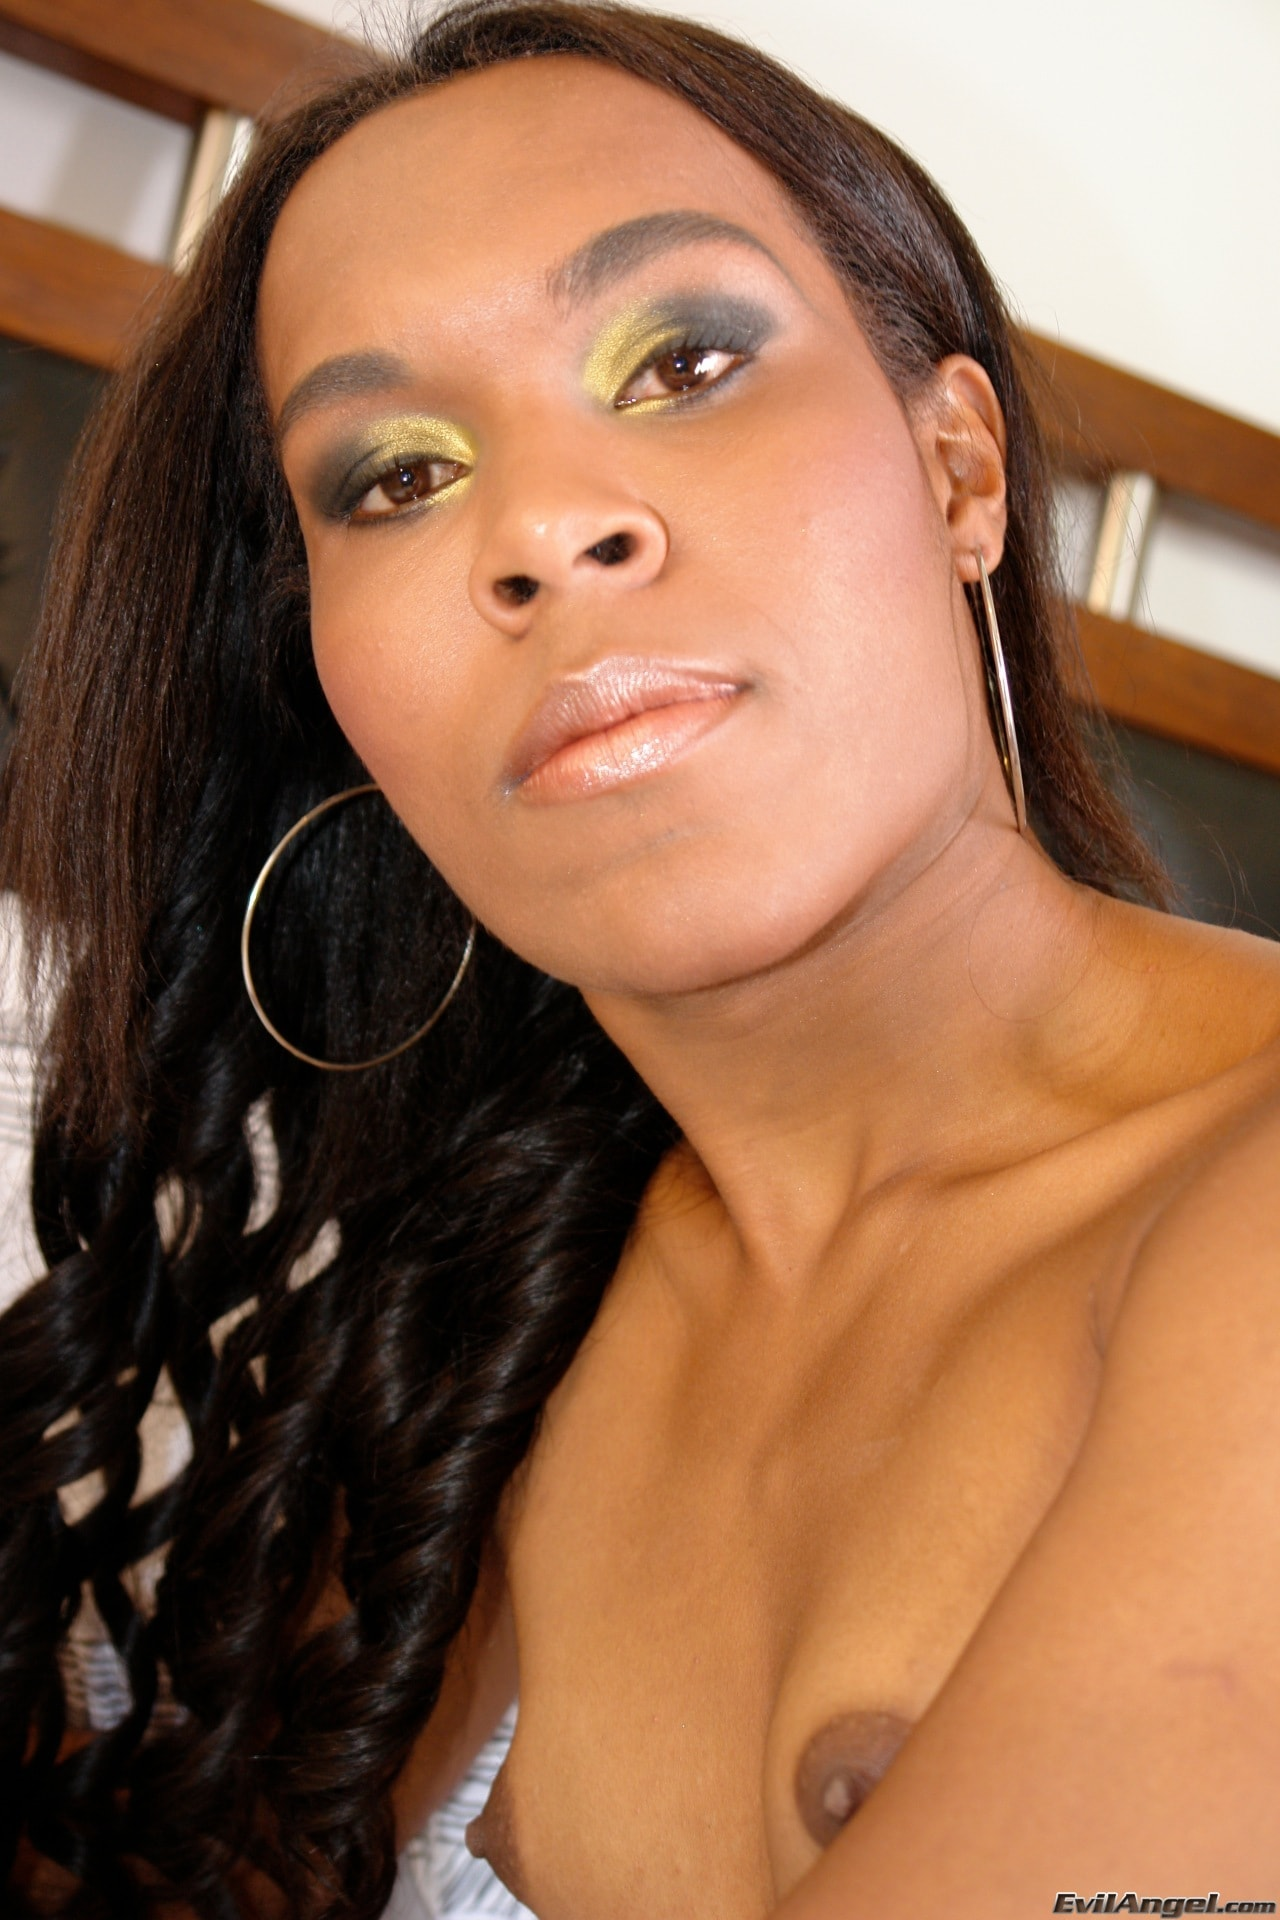 I Love Black Shemales 'Black Shemale Idol - The Auditions 02' starring Nicky B (Photo 22)